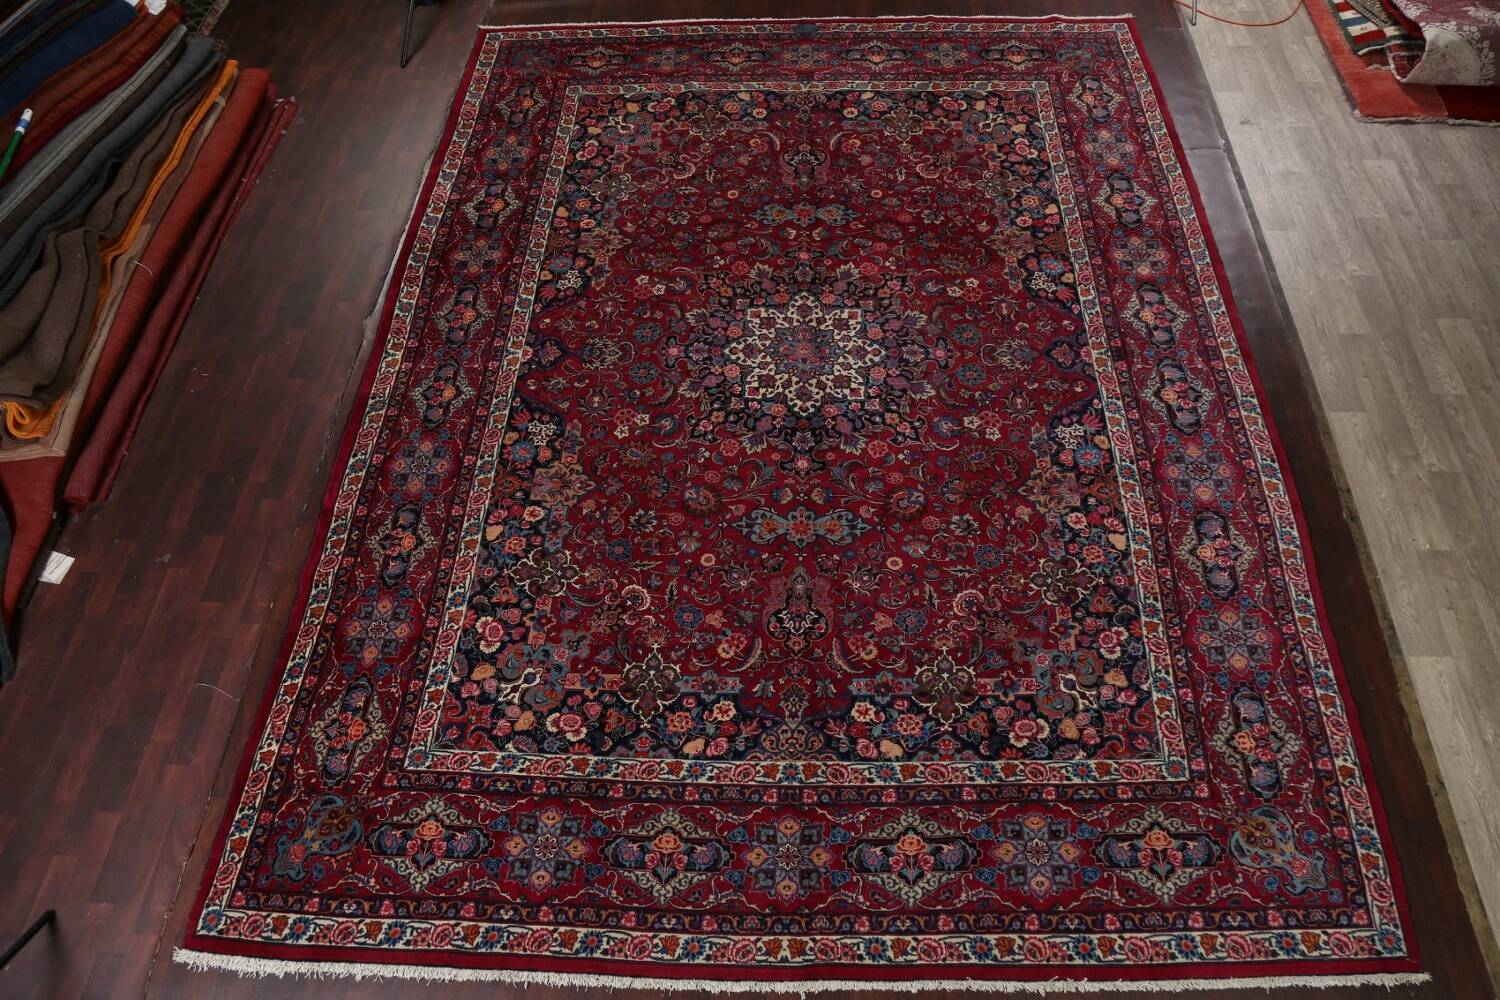 Antique Vegetable Dye Mood Persian Red Rug 11x15 image 16